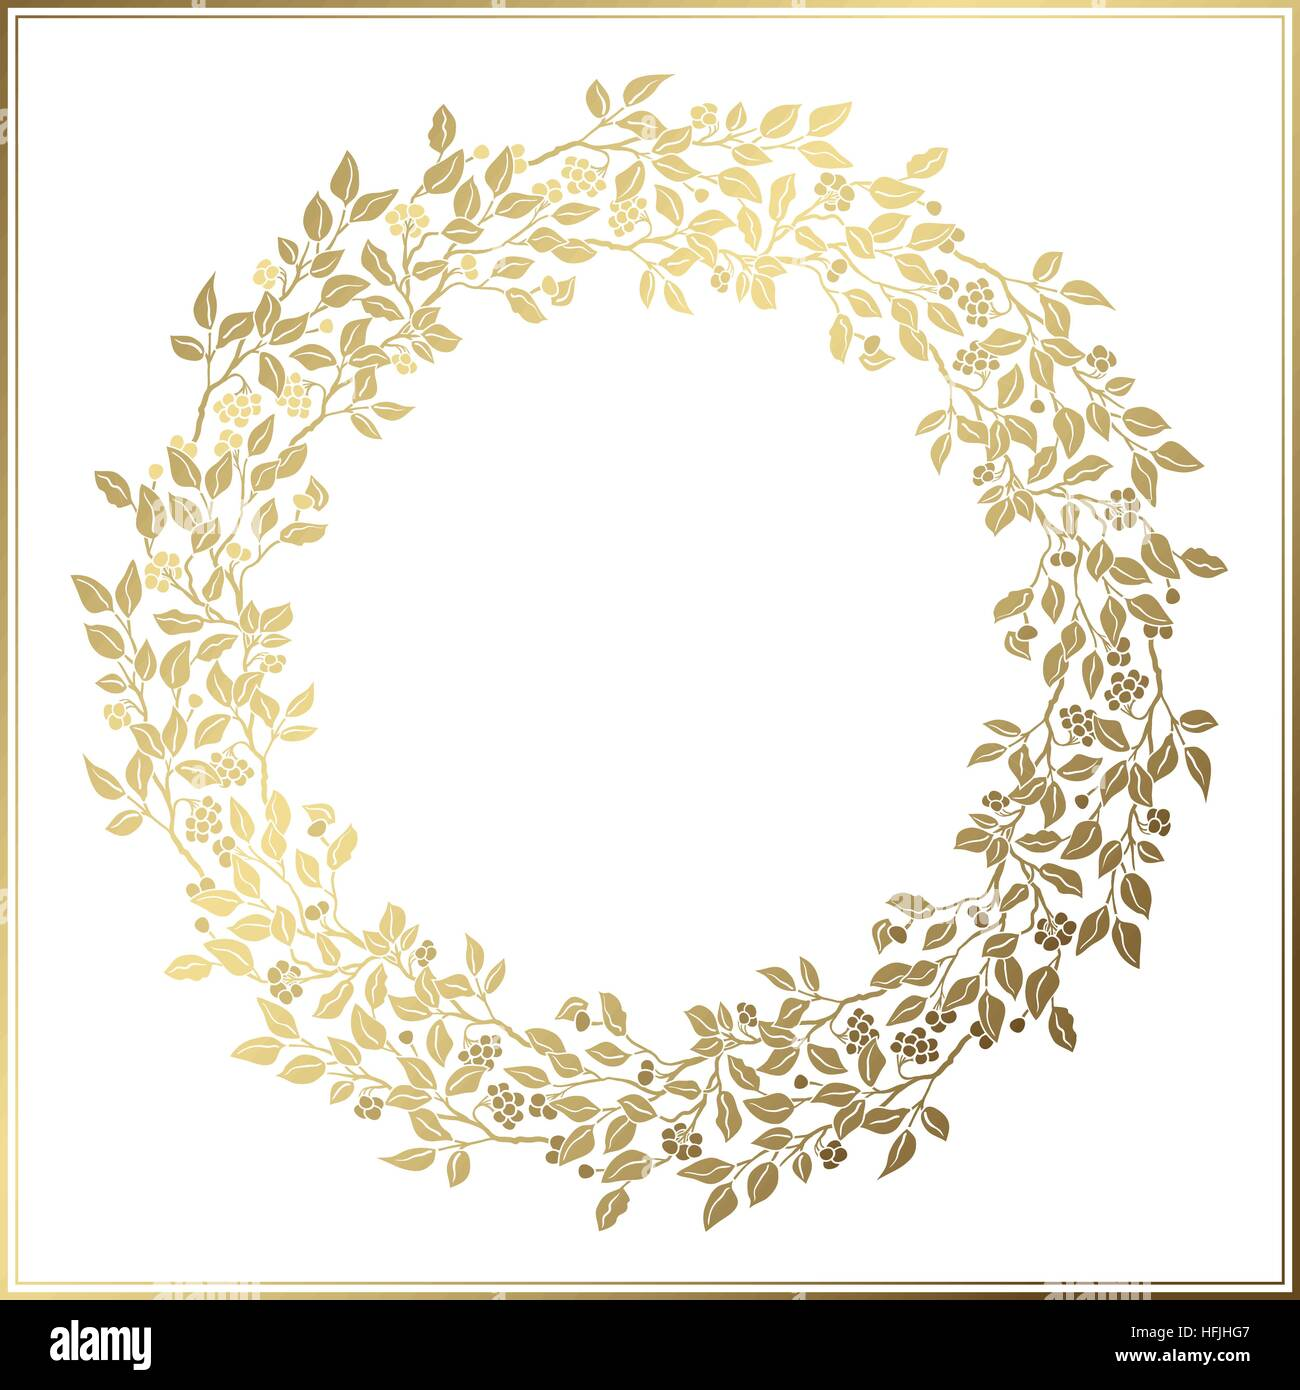 Beautiful vintage circle frame wedding decor openwork template beautiful vintage circle frame wedding decor openwork template golden leaves and berries on white background junglespirit Gallery